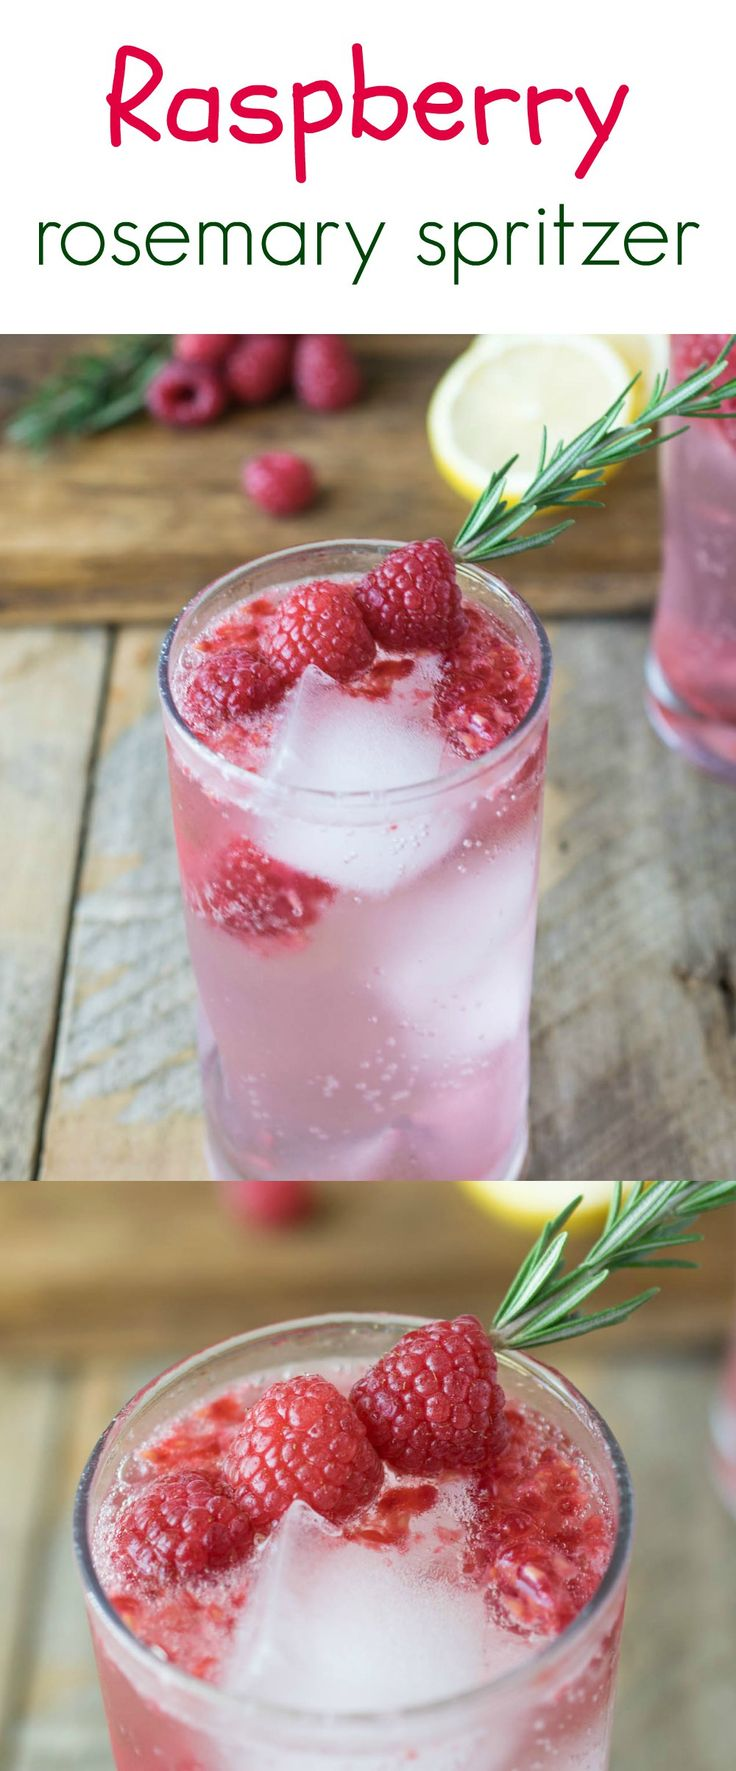 Raspberry rosemary spritzer is a fun mocktail that can be enjoyed all holiday season made with real ingredients. Fresh raspberries, rosemary and DASANI® Sparkling Berry. #NewWaytoSparkle #ad